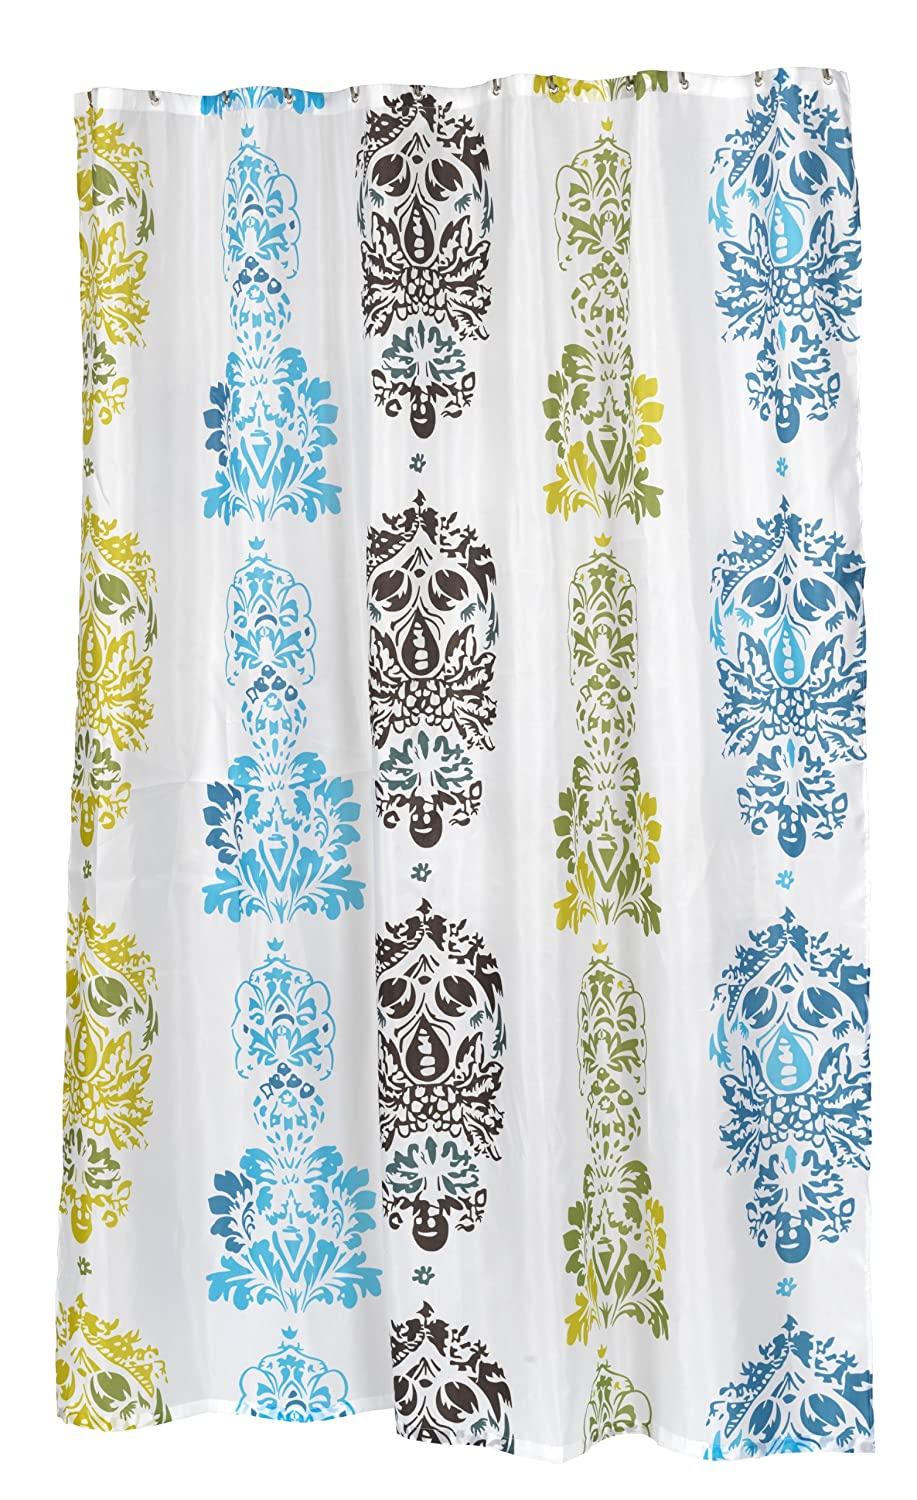 Carnation Home Fashions 100 Percent Polyester Fabric 72 By 84 Inch Shower Curtai Ebay